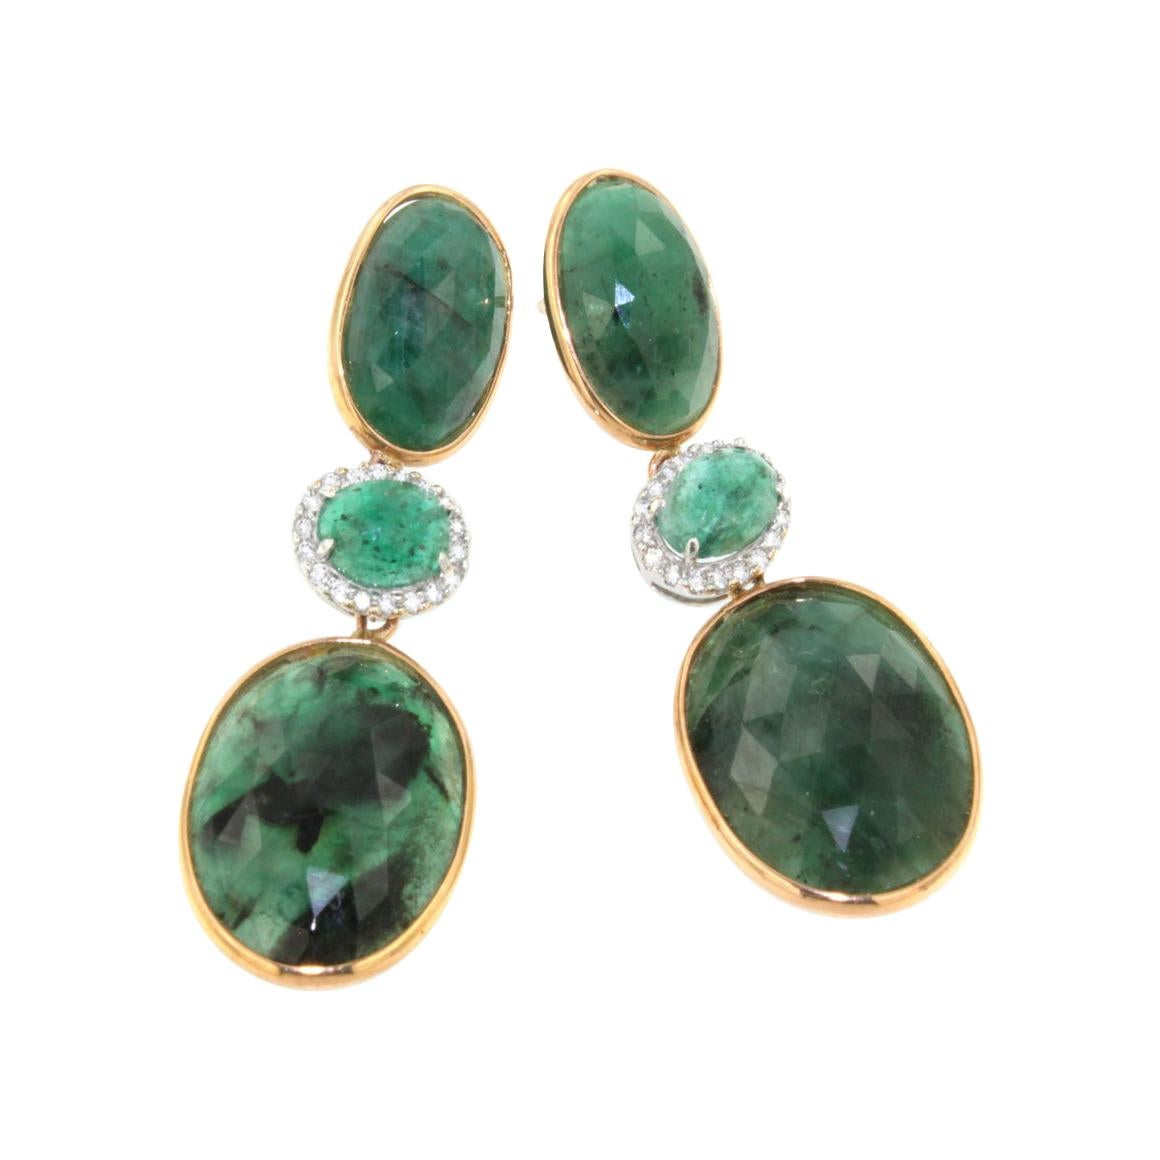 18kt Rose and White Gold with Emerald Earrings